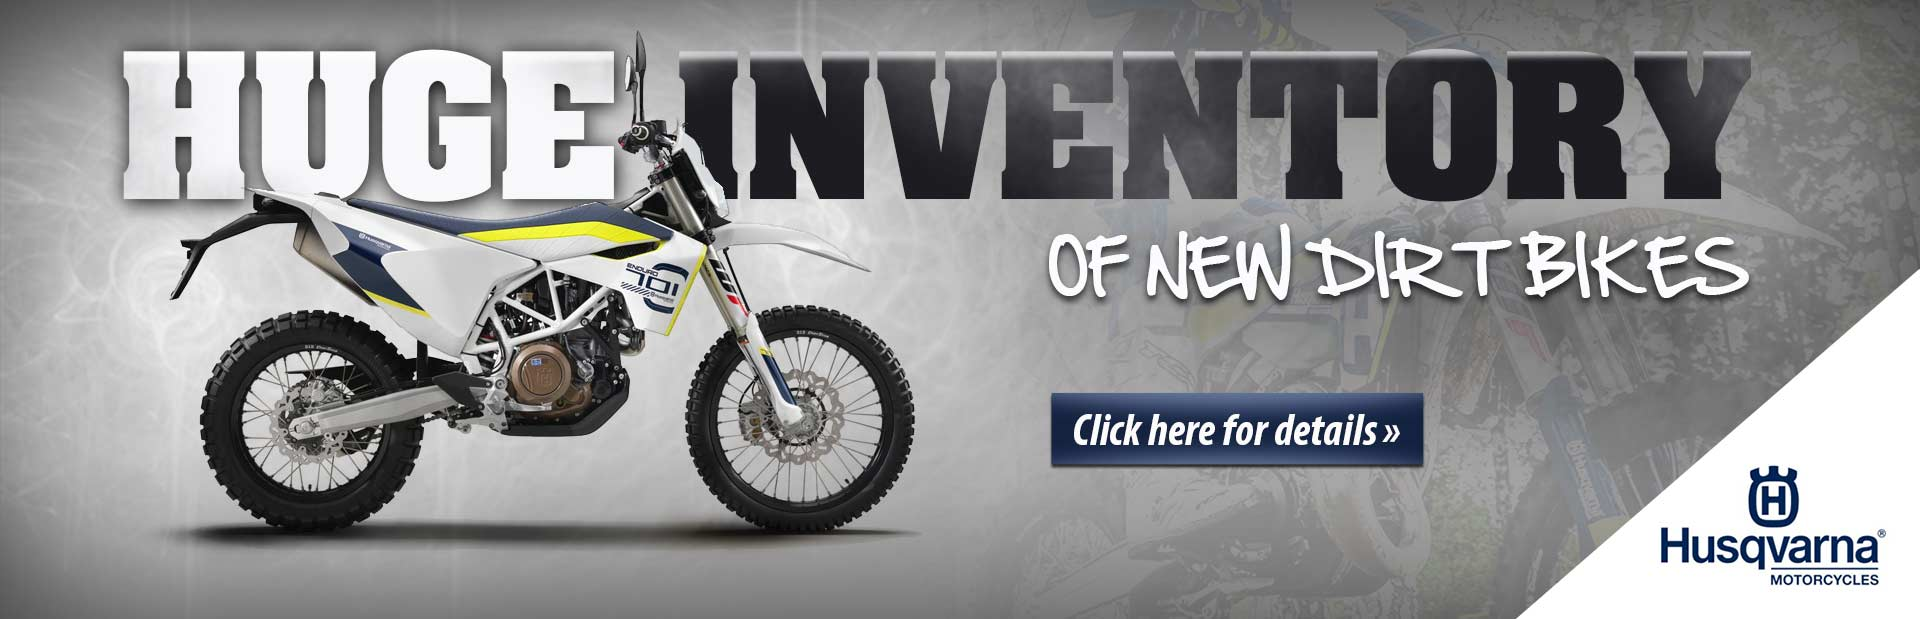 We have a huge inventory of new Husqvarna dirt bikes. Click here for details.